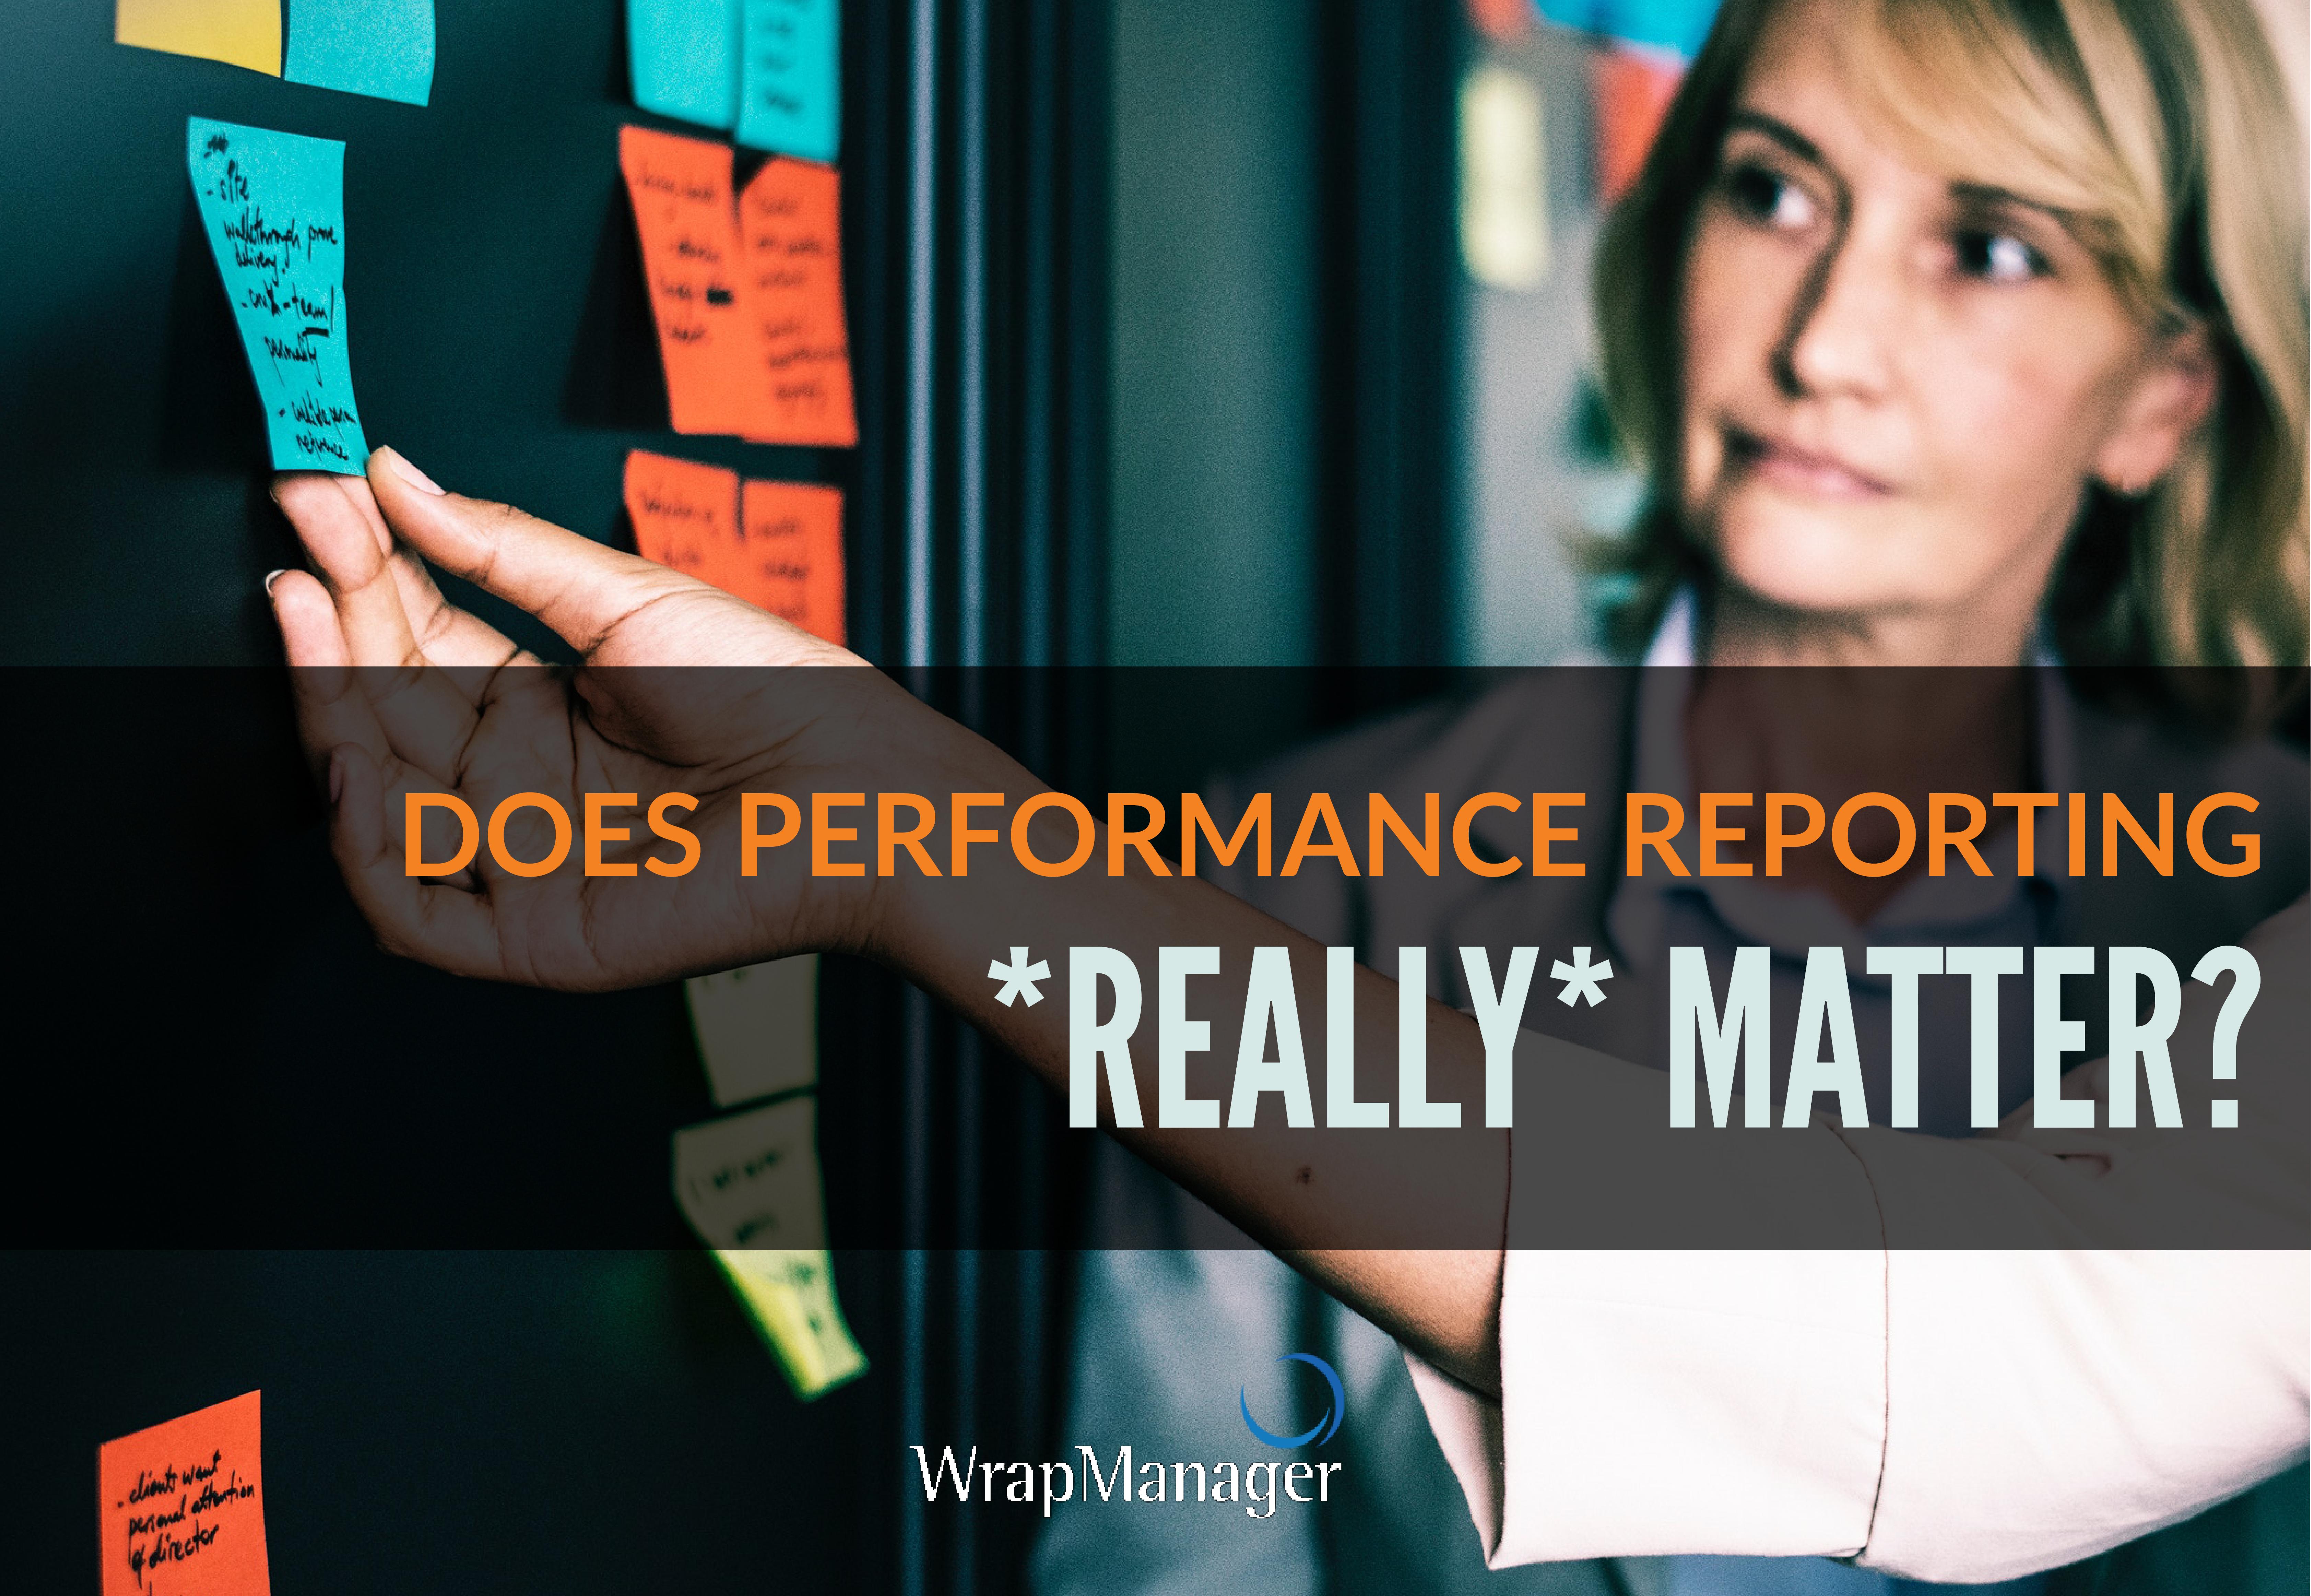 Performance Reporting: Does It Really Matter?